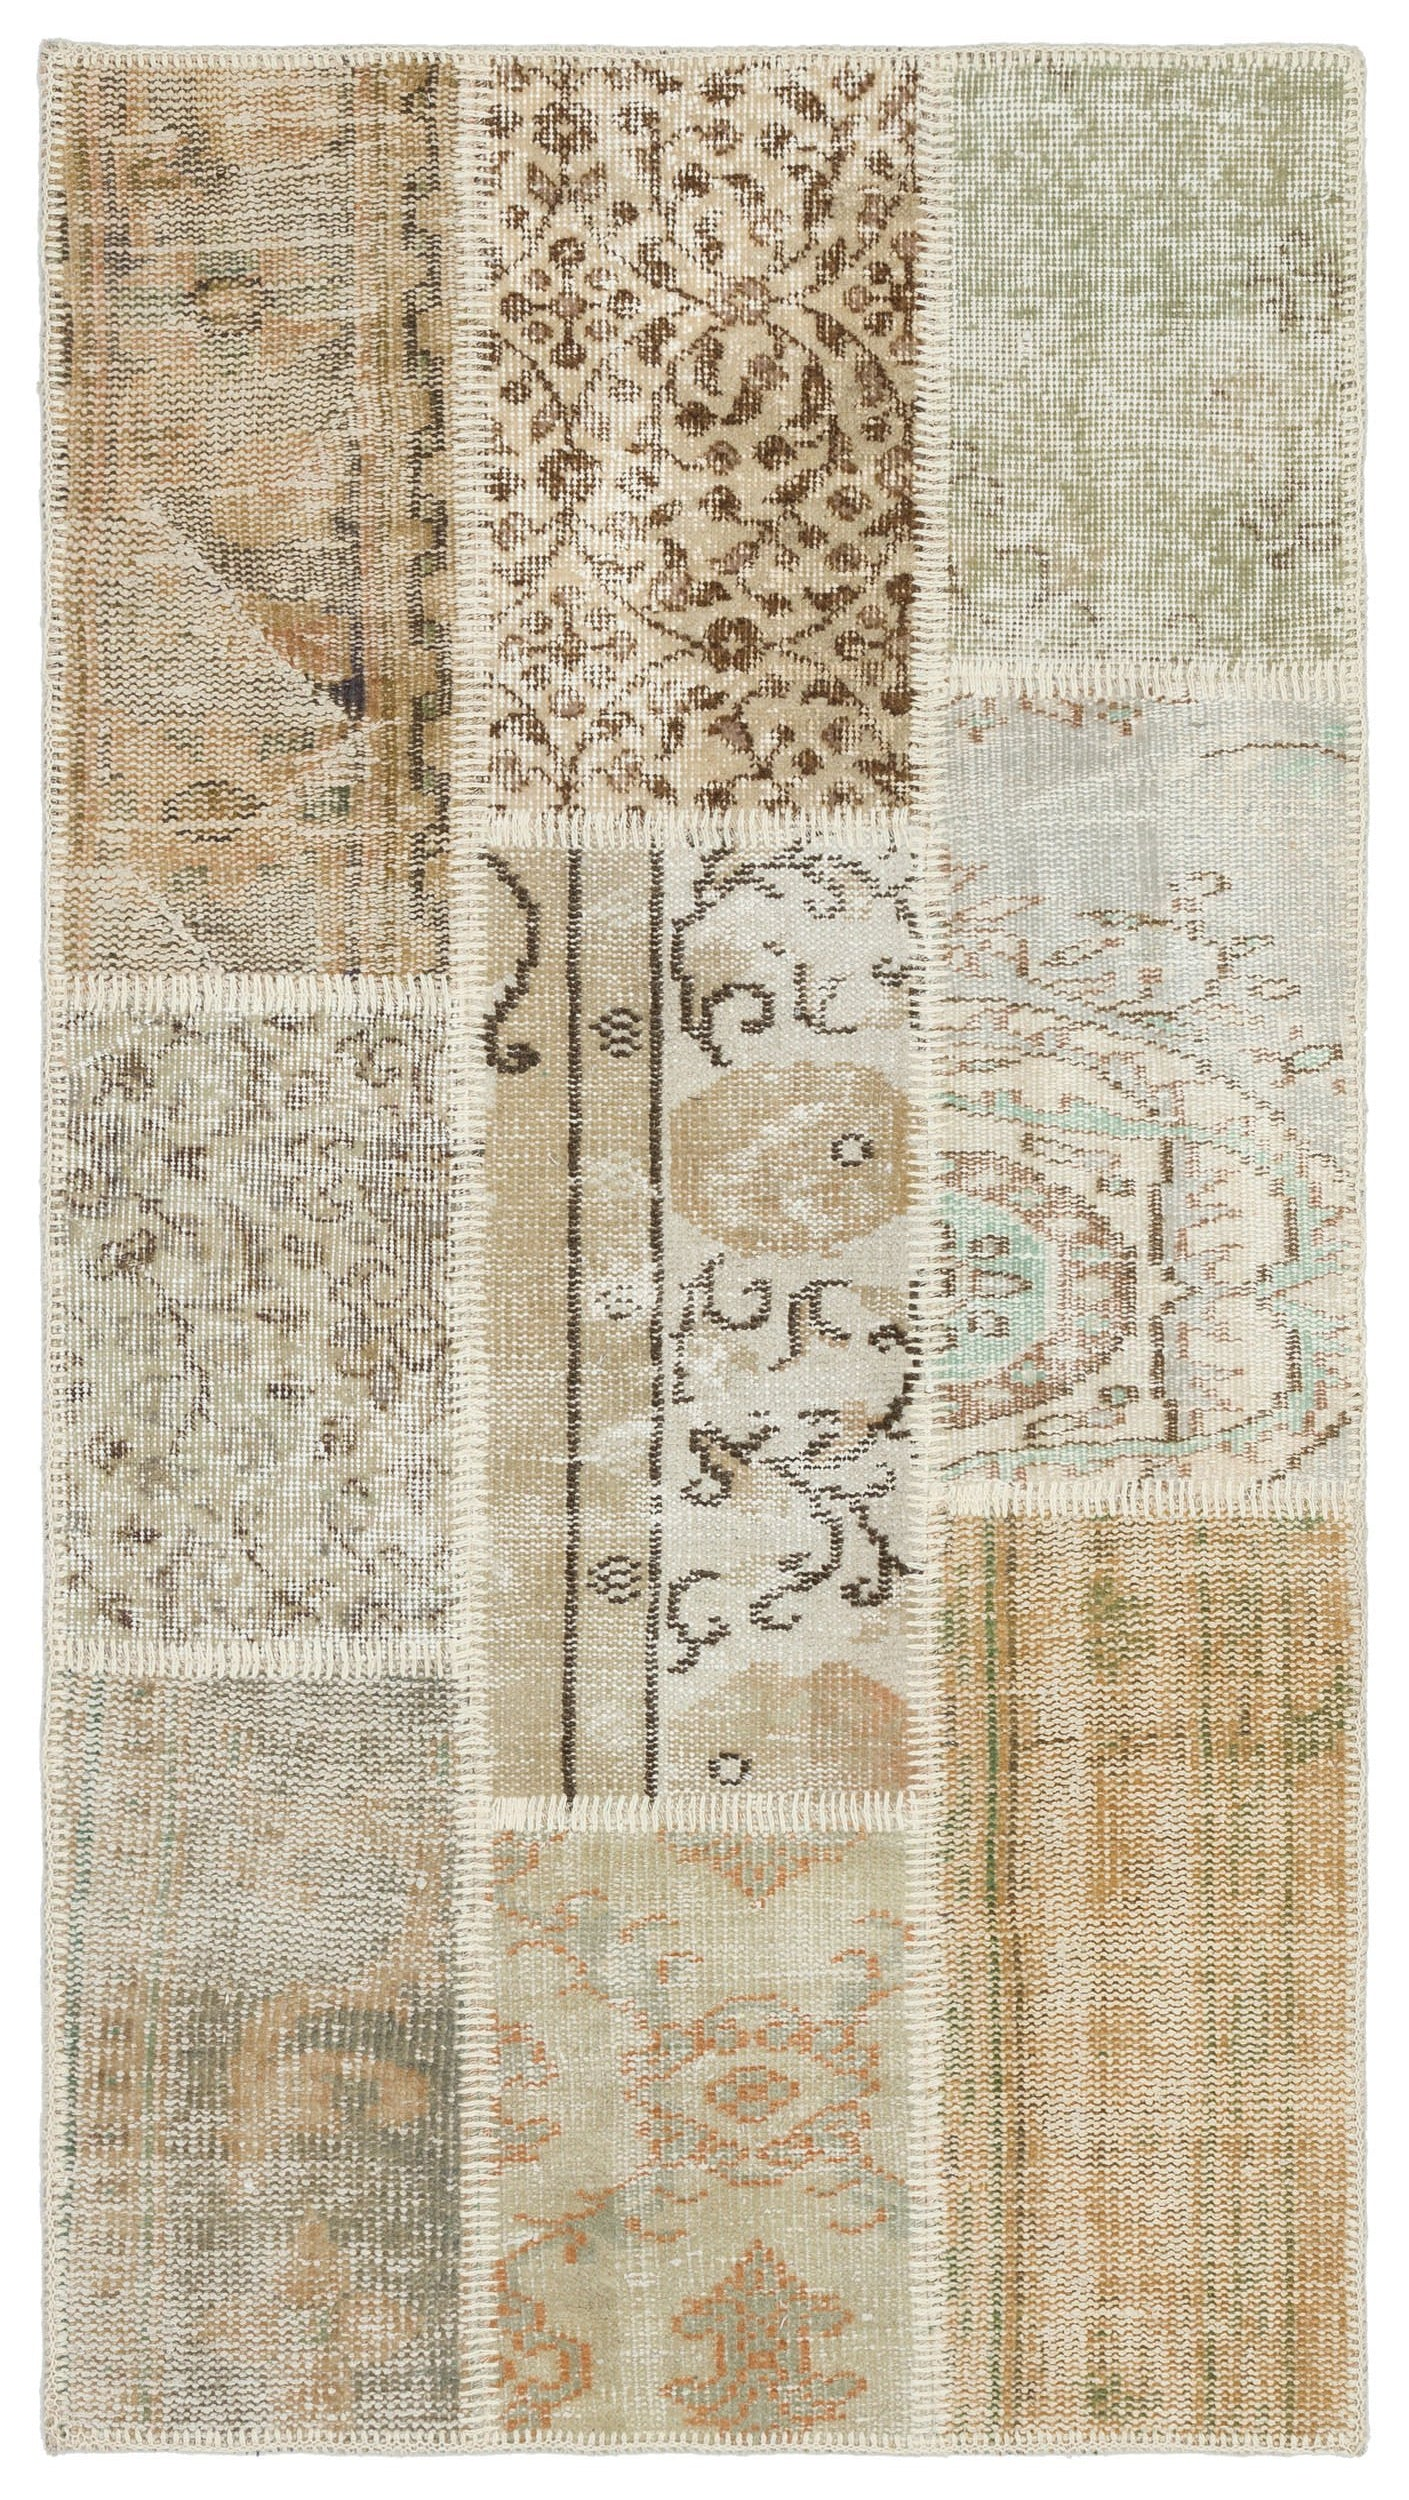 Beige Over Dyed Patchwork Unique Rug 2'8'' x 4'11'' ft 82 x 150 cm